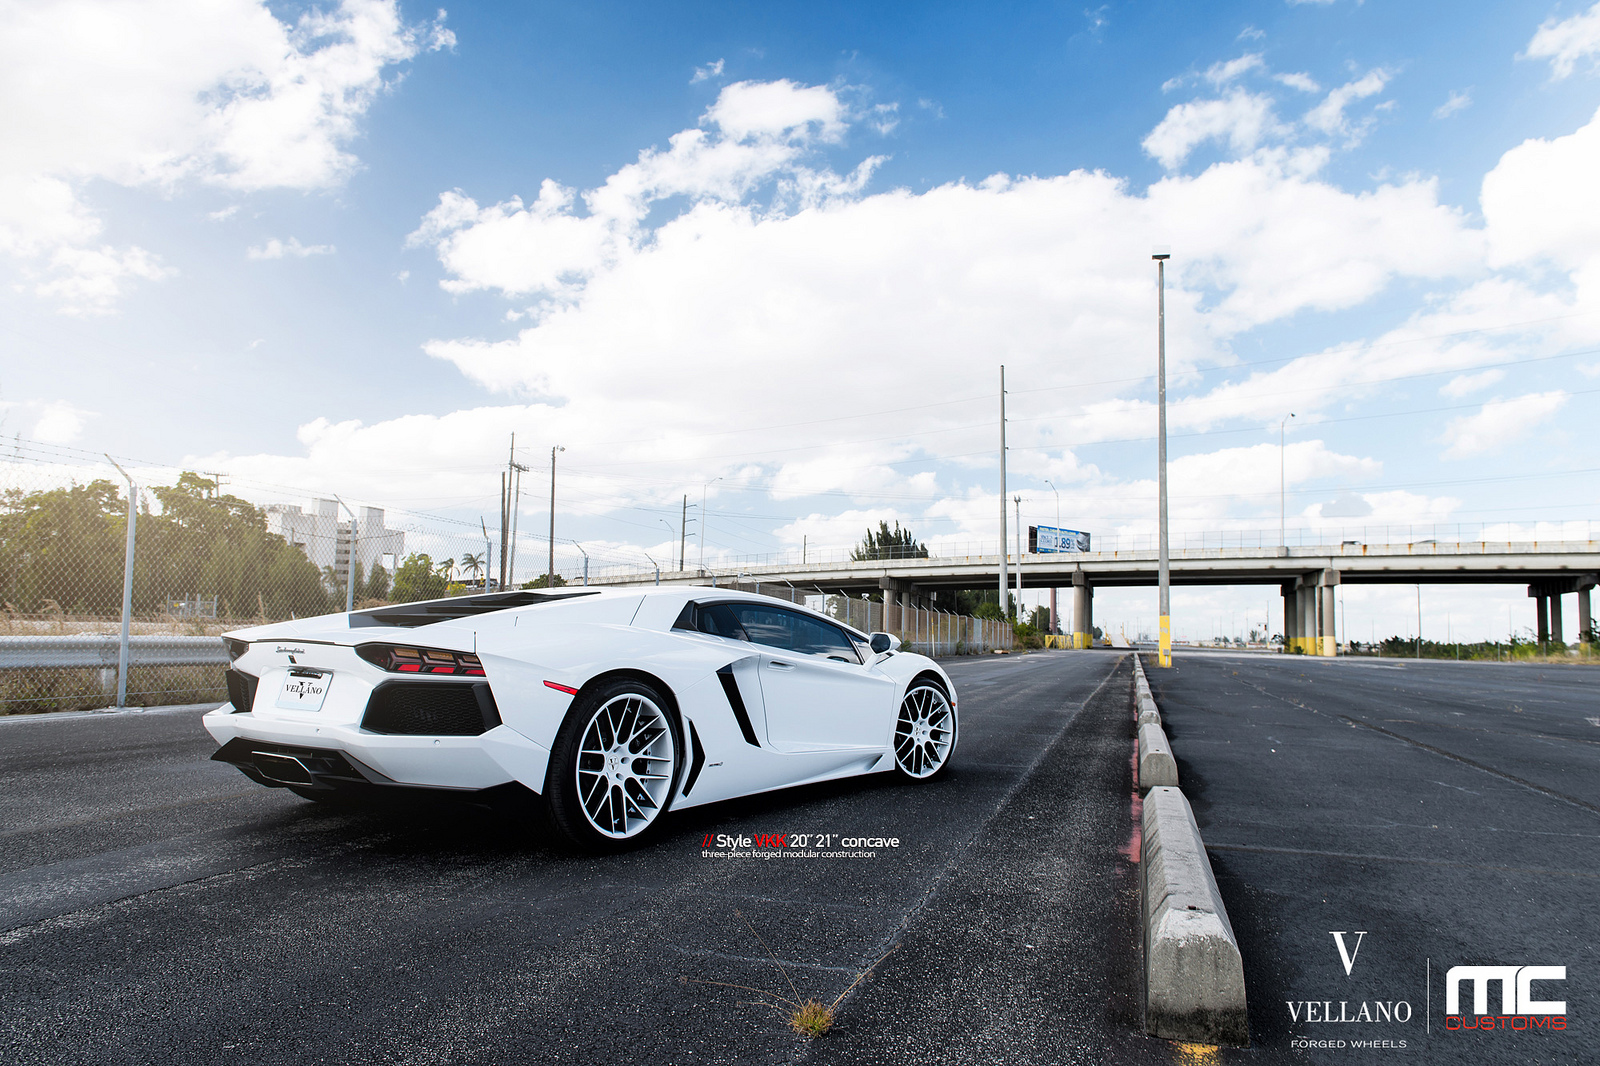 white on white lamborghini aventador with vellano vkk wheels - Lamborghini Aventador White